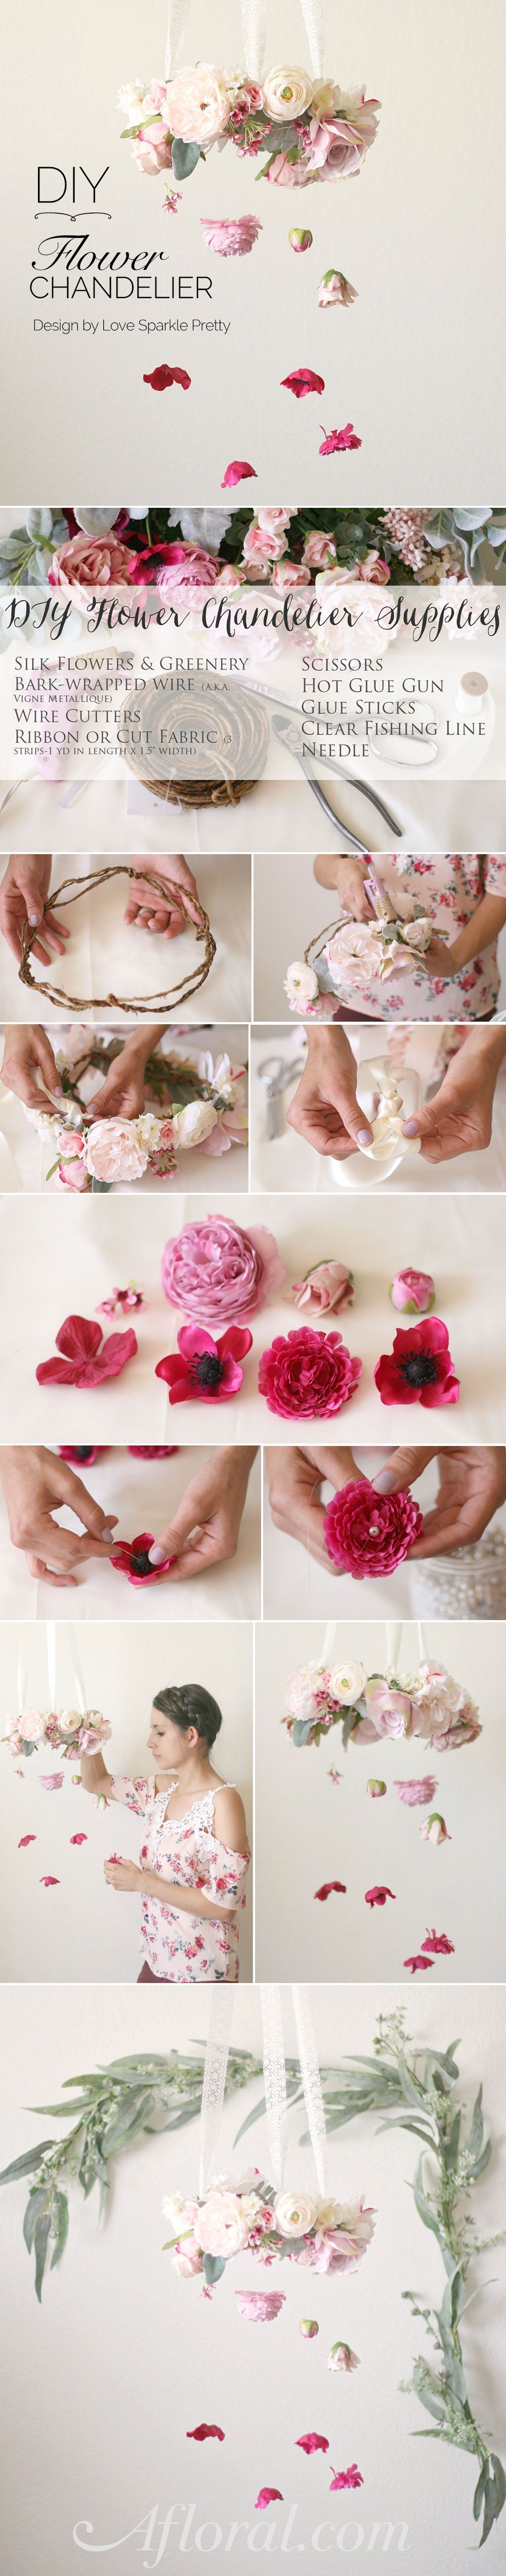 Diy room decor for spring flower chandelier diy flower and diy room decor for spring flower chandelier diy flower and chandeliers arubaitofo Image collections